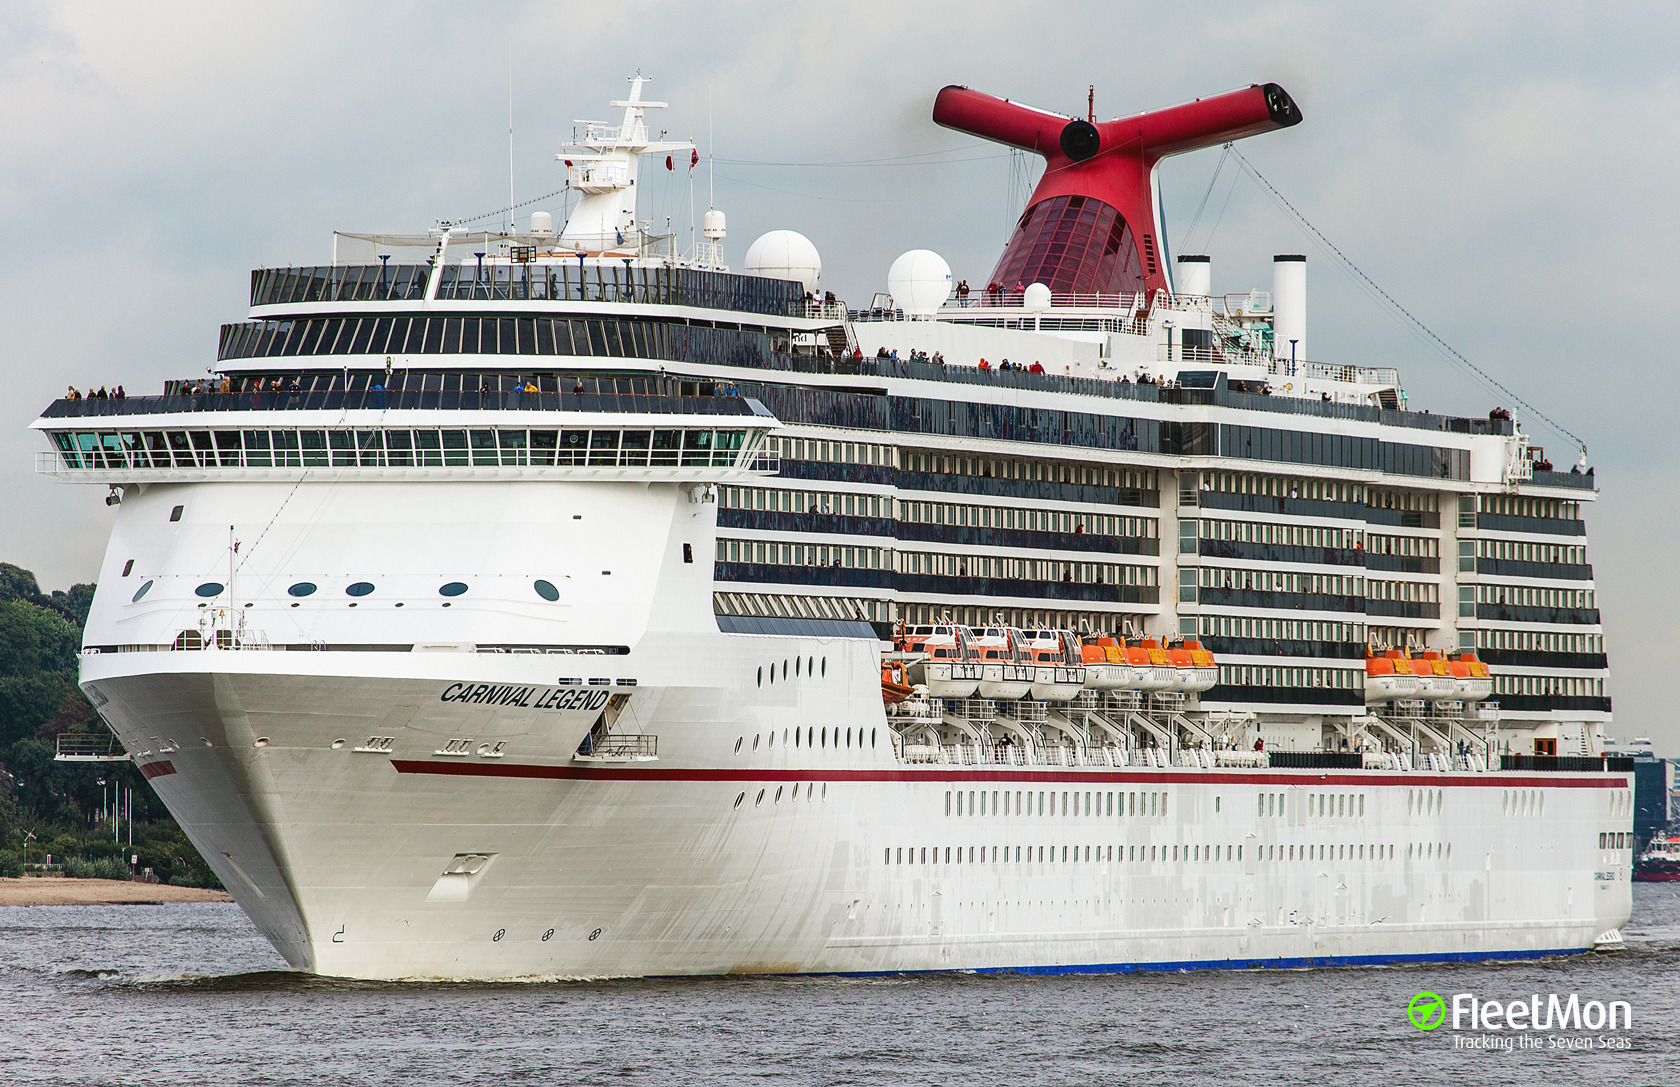 Ship CARNIVAL LEGEND Heavy List Incident - How heavy is a cruise ship